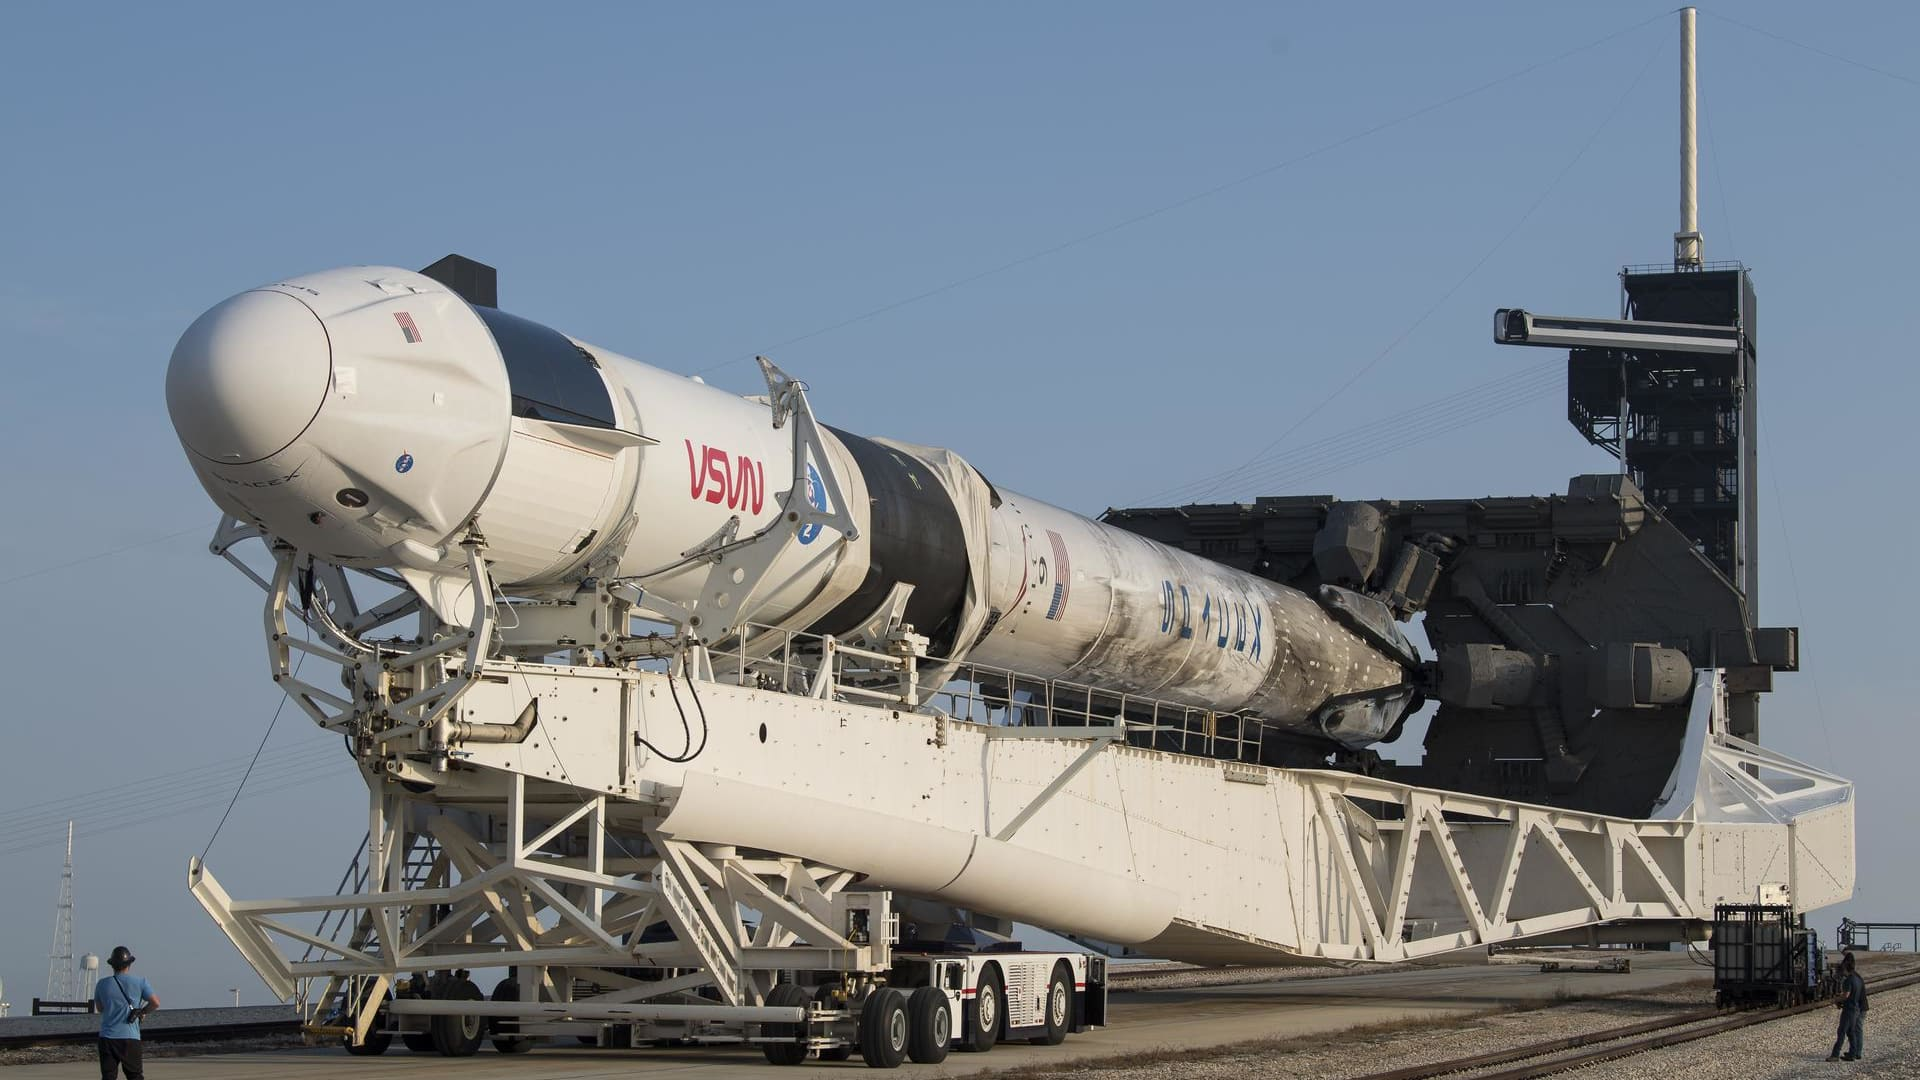 A SpaceX Falcon 9 rocket with the company's Crew Dragon spacecraft onboard is seen as it is rolled to Launch Complex 39A as preparations continue for the Crew-2 mission, Friday, April 16, 2021, at NASA's Kennedy Space Center in Florida.